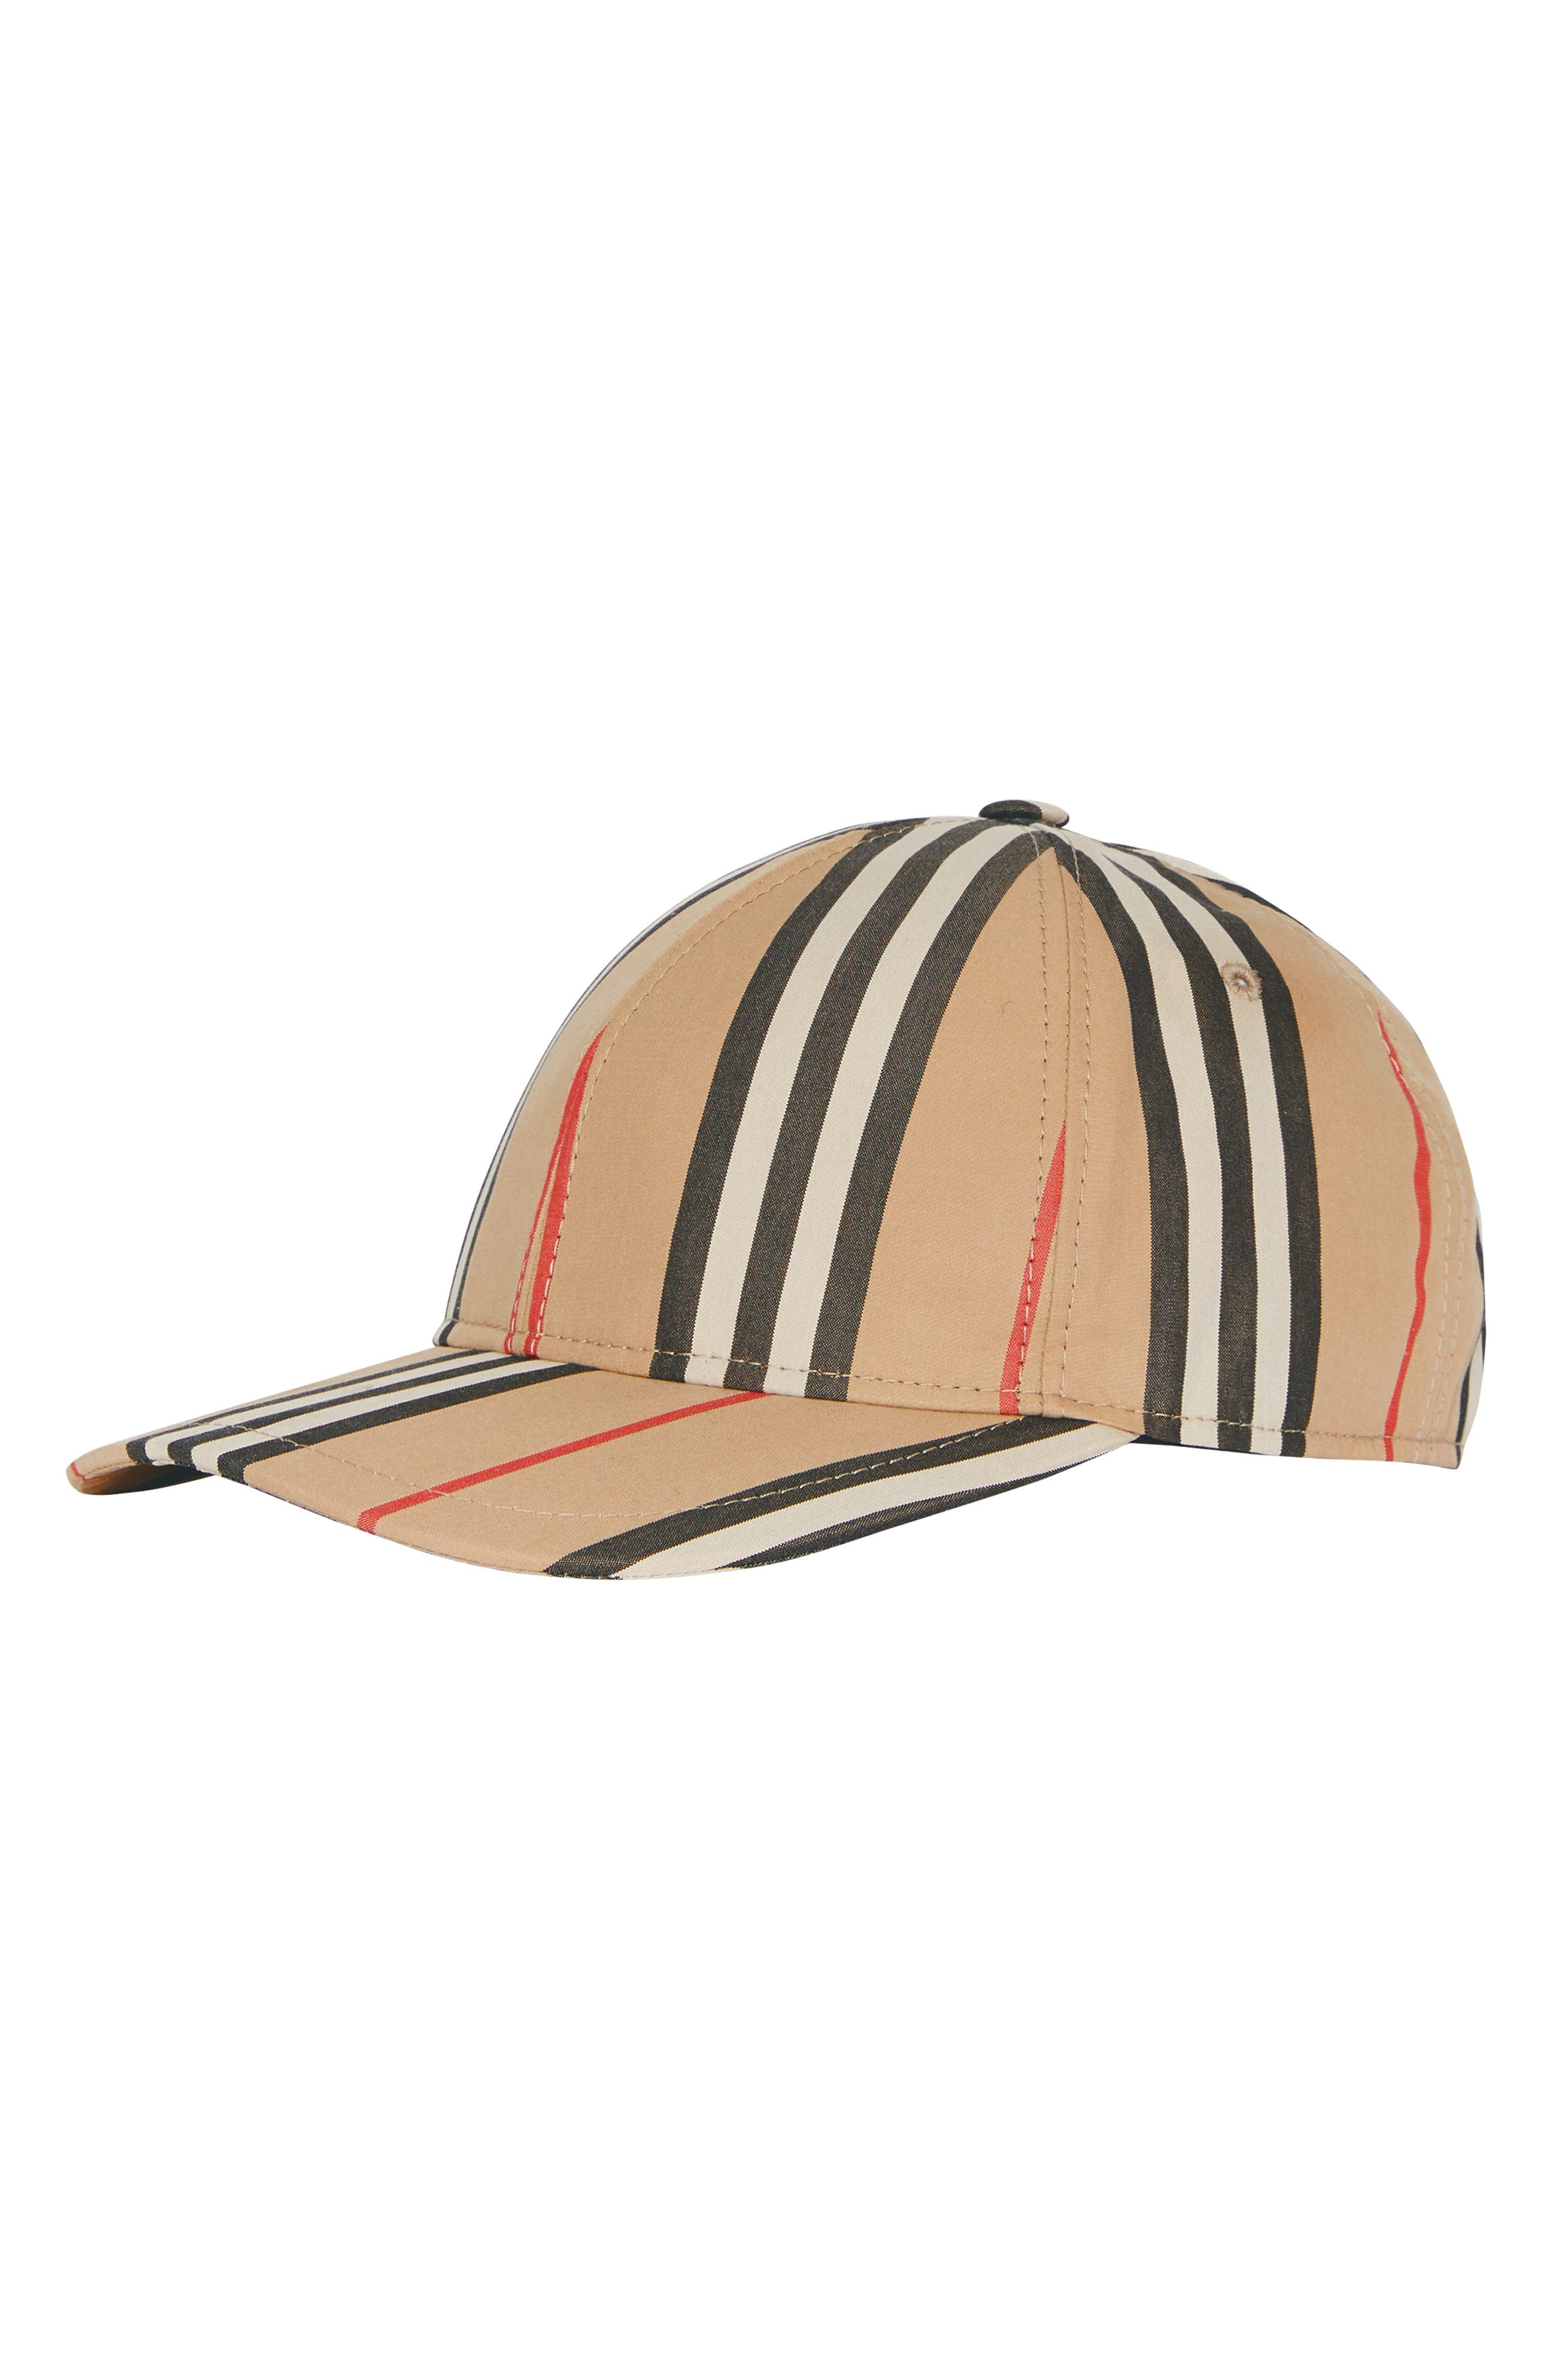 a77c25a5adf Burberry Hats for Women